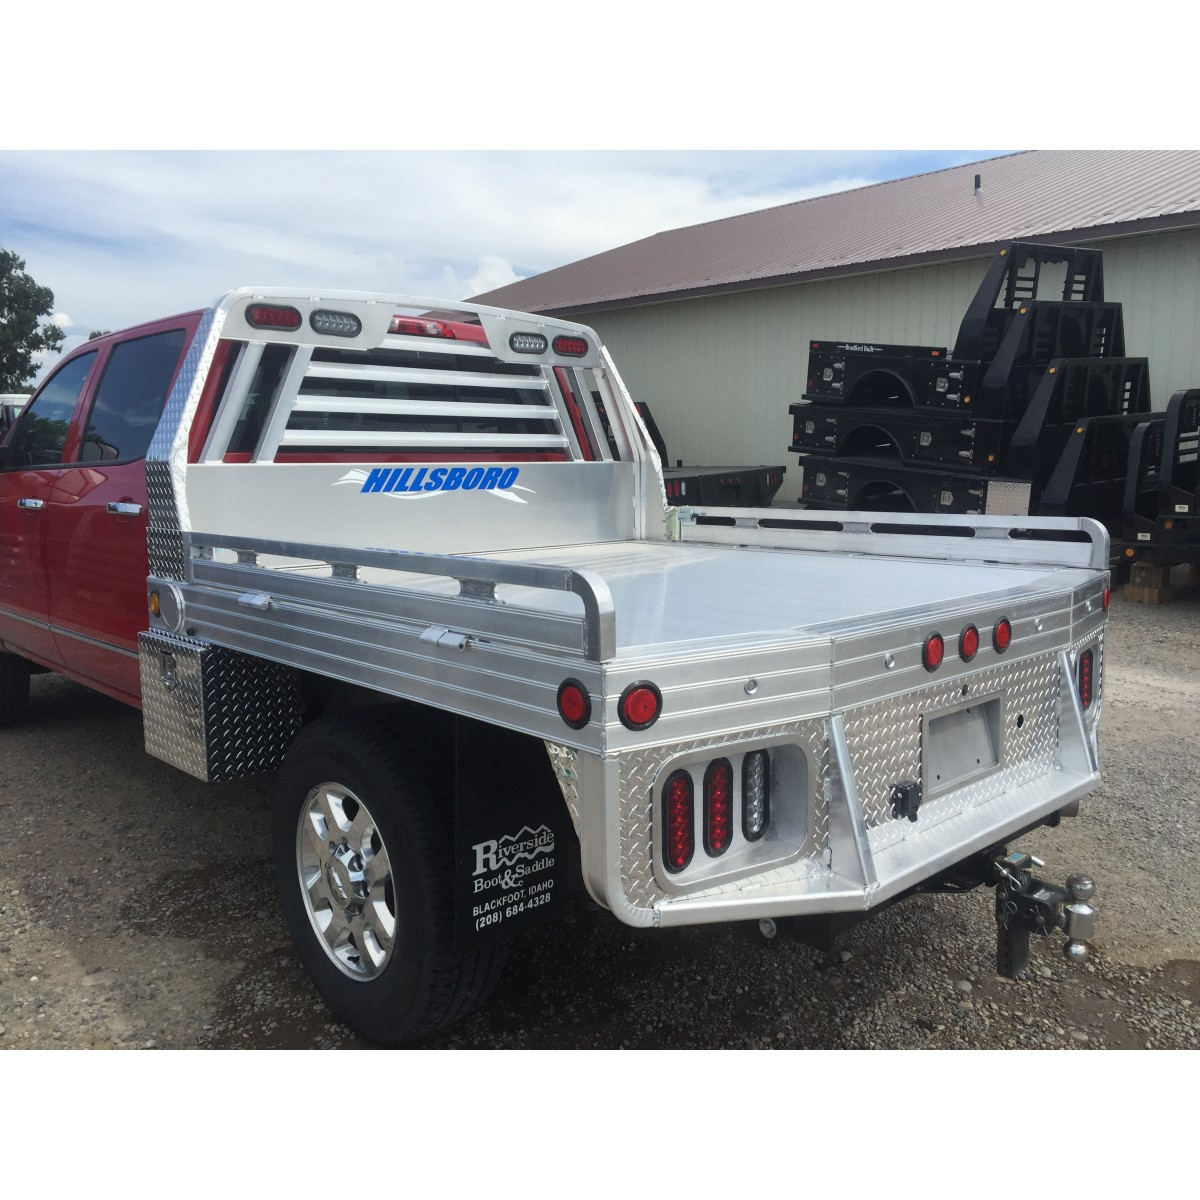 Hillsboro flatbeds for pickups for Bed tech 3000